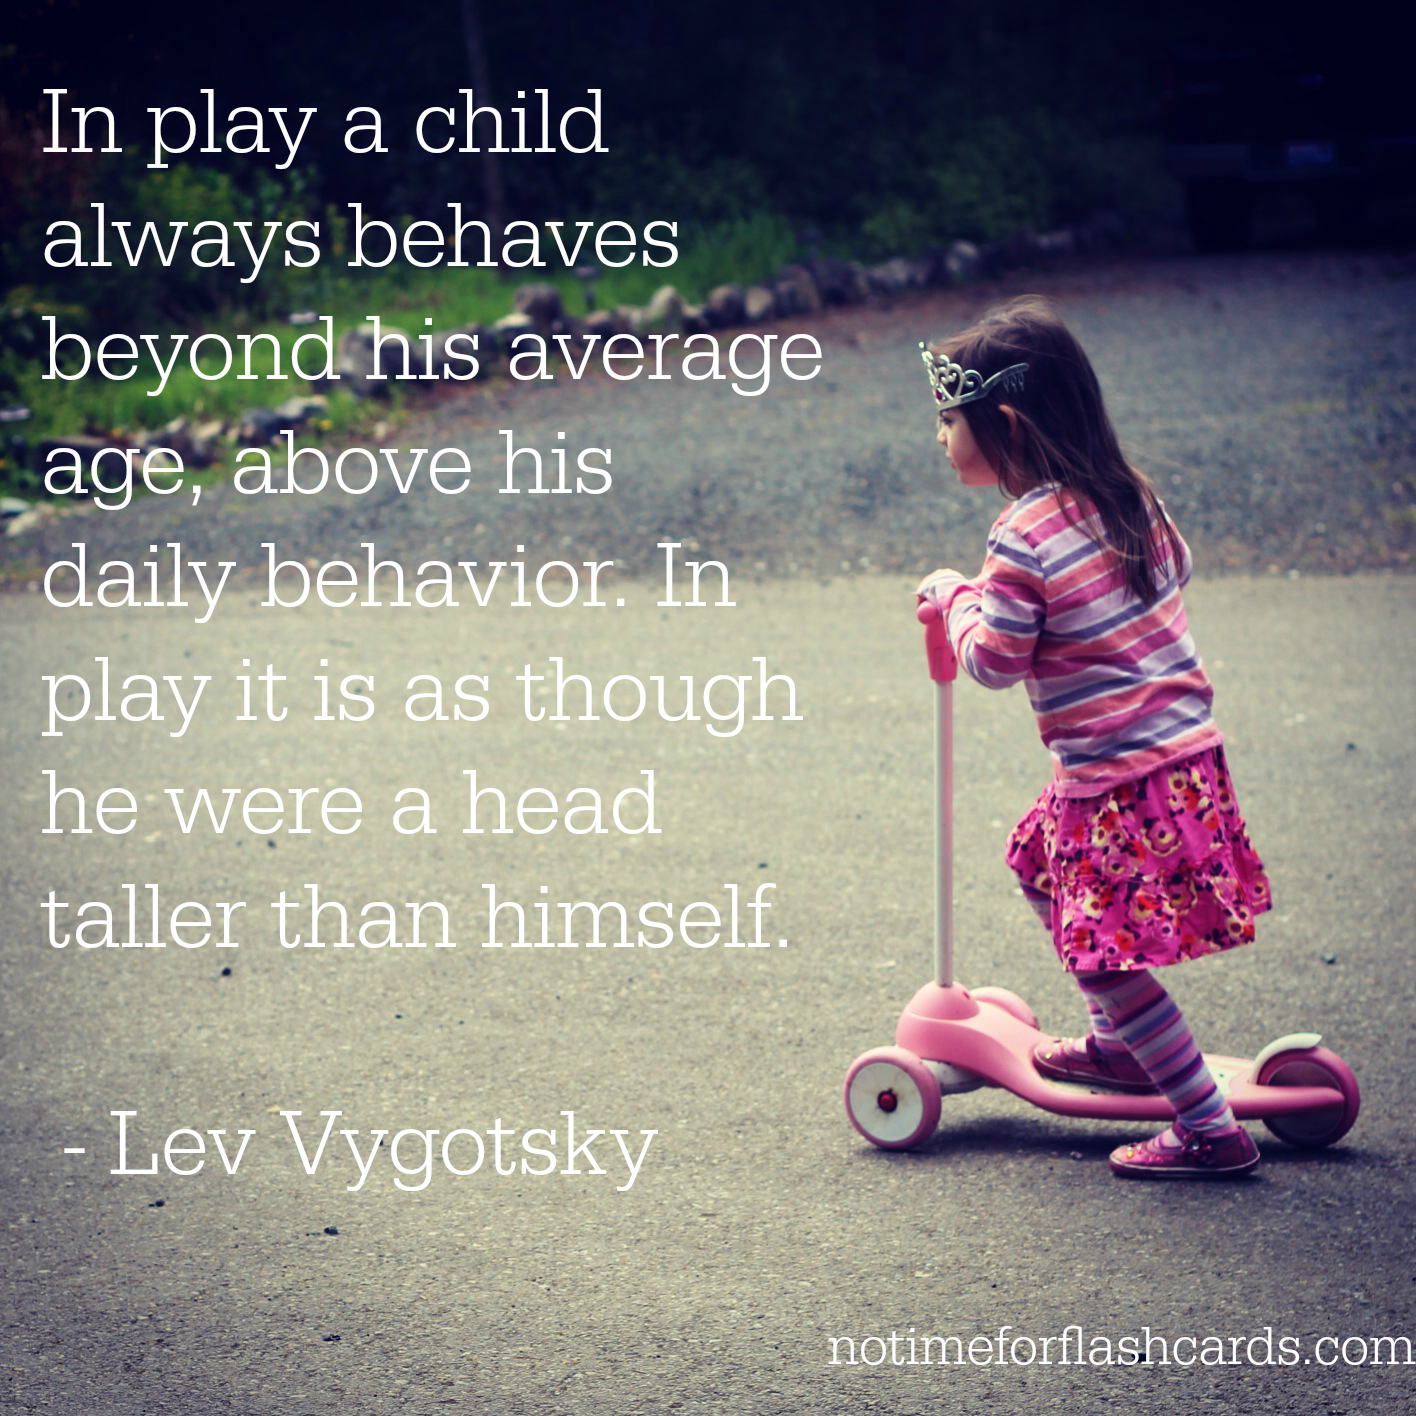 Encourage Your Child To Get Active Use Their Imagination And Play